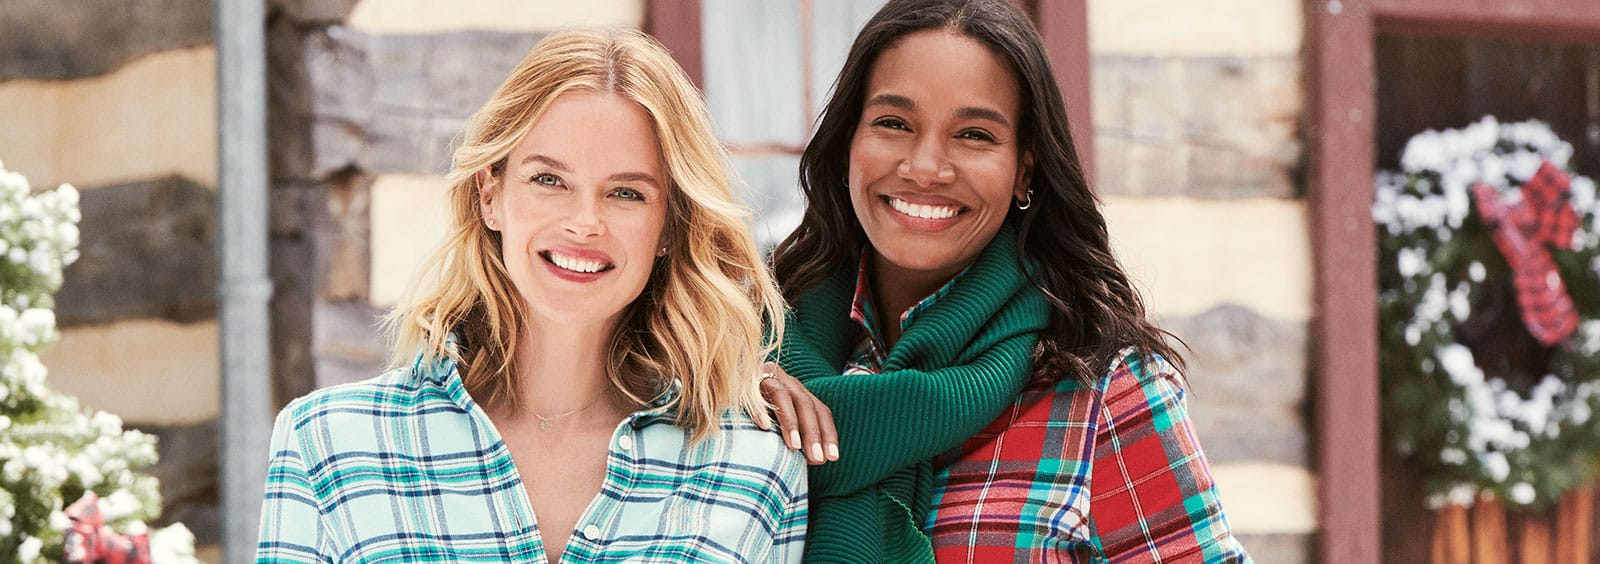 Top 6 Flannel Outfits This Holiday Season | Lands' End